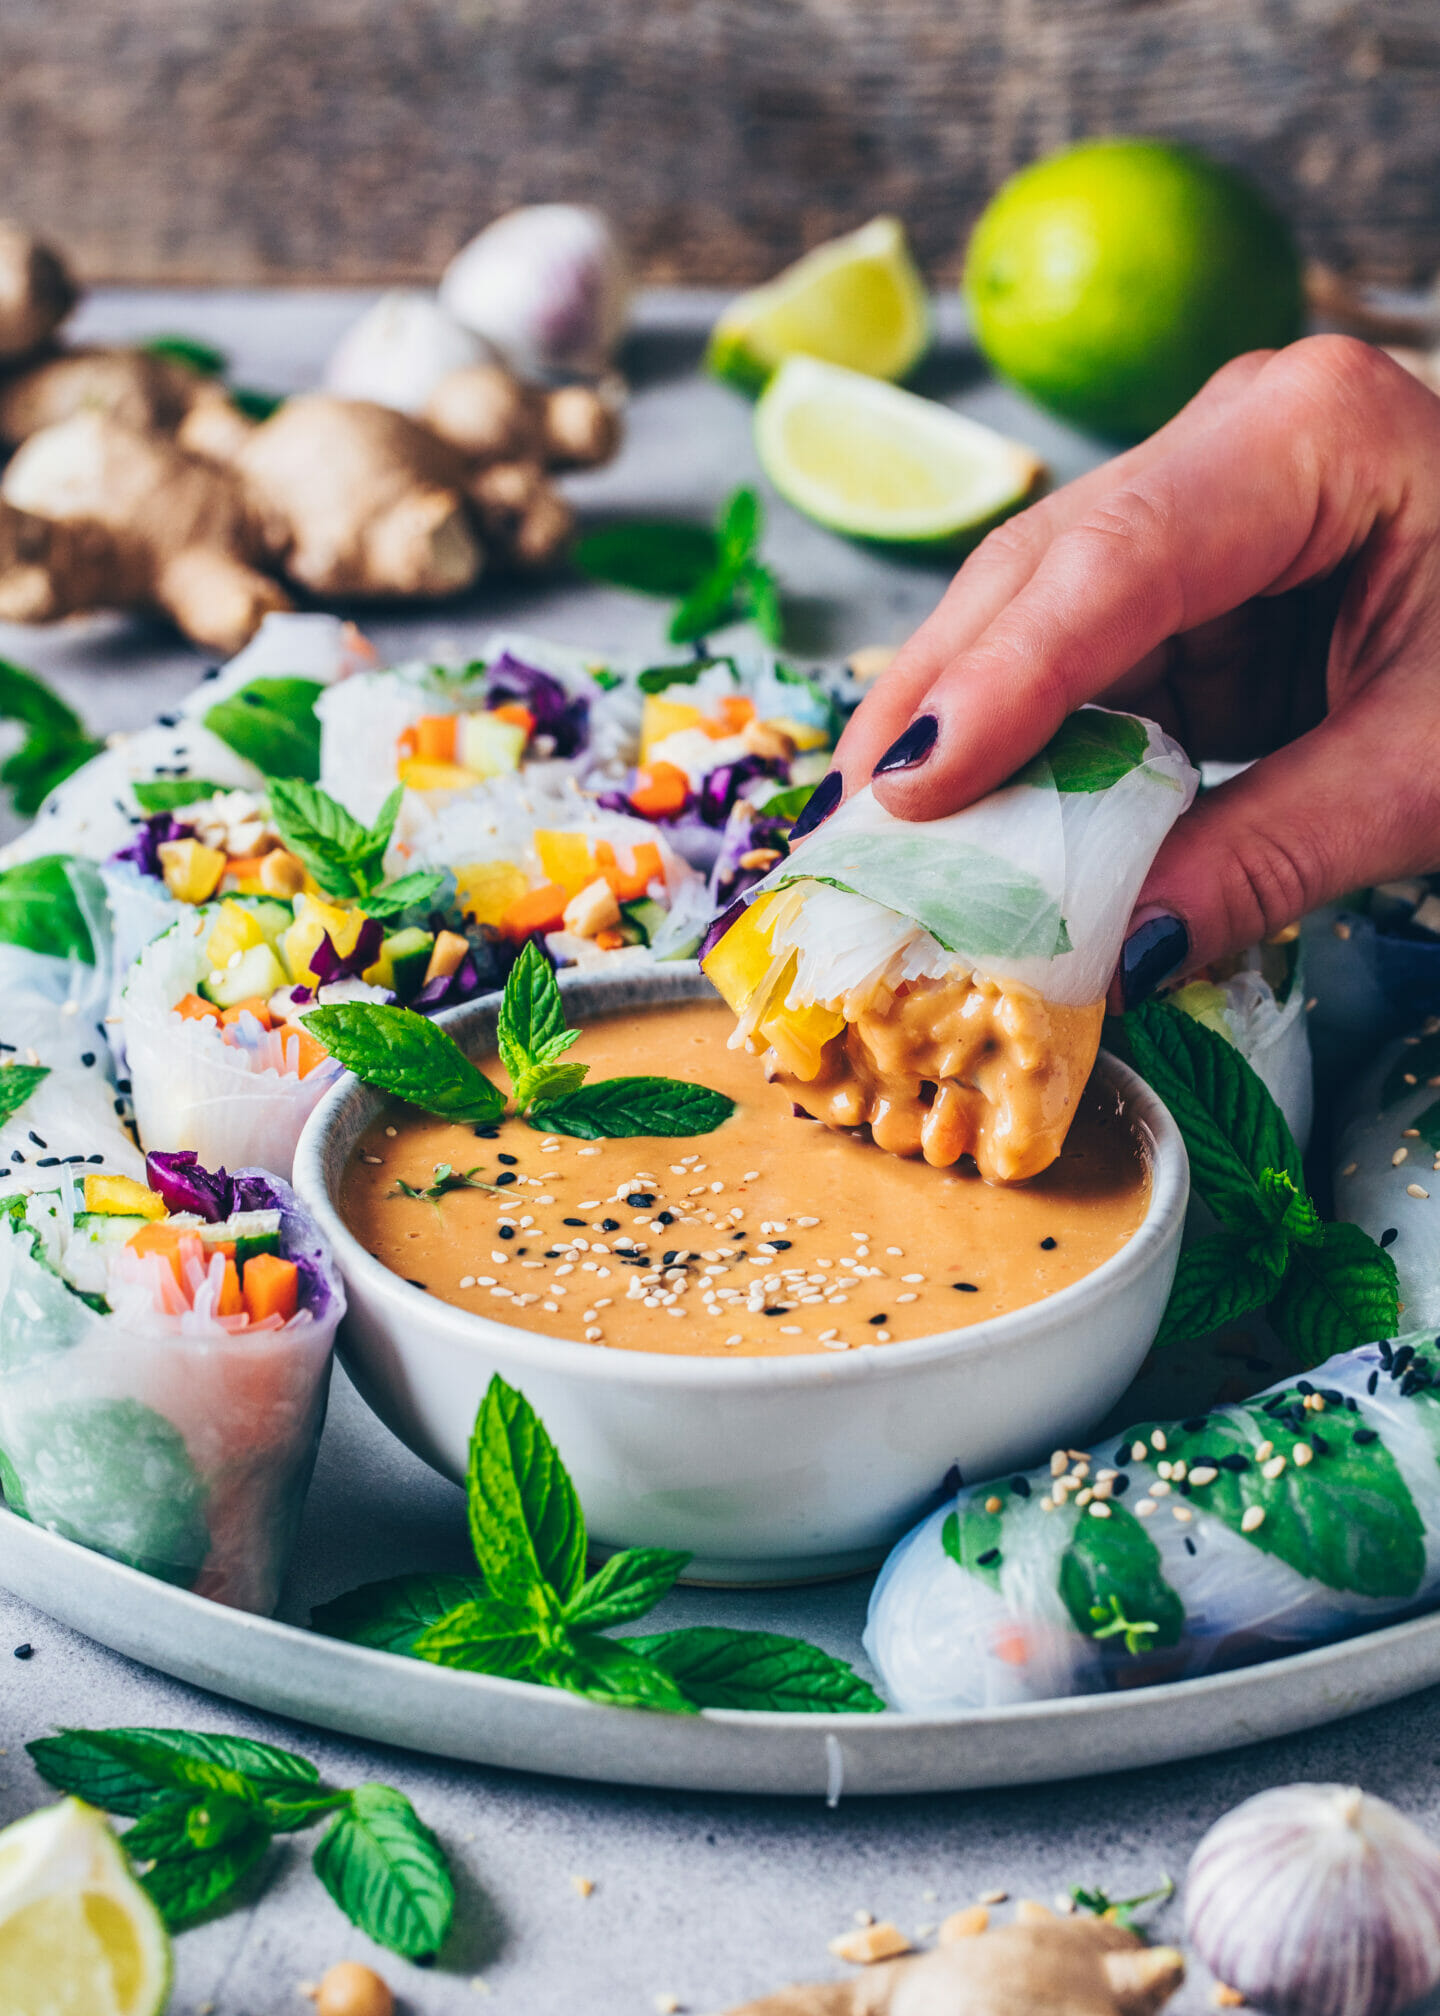 Summer Rolls (Rice Paper Salad Wraps) with Peanut Sauce